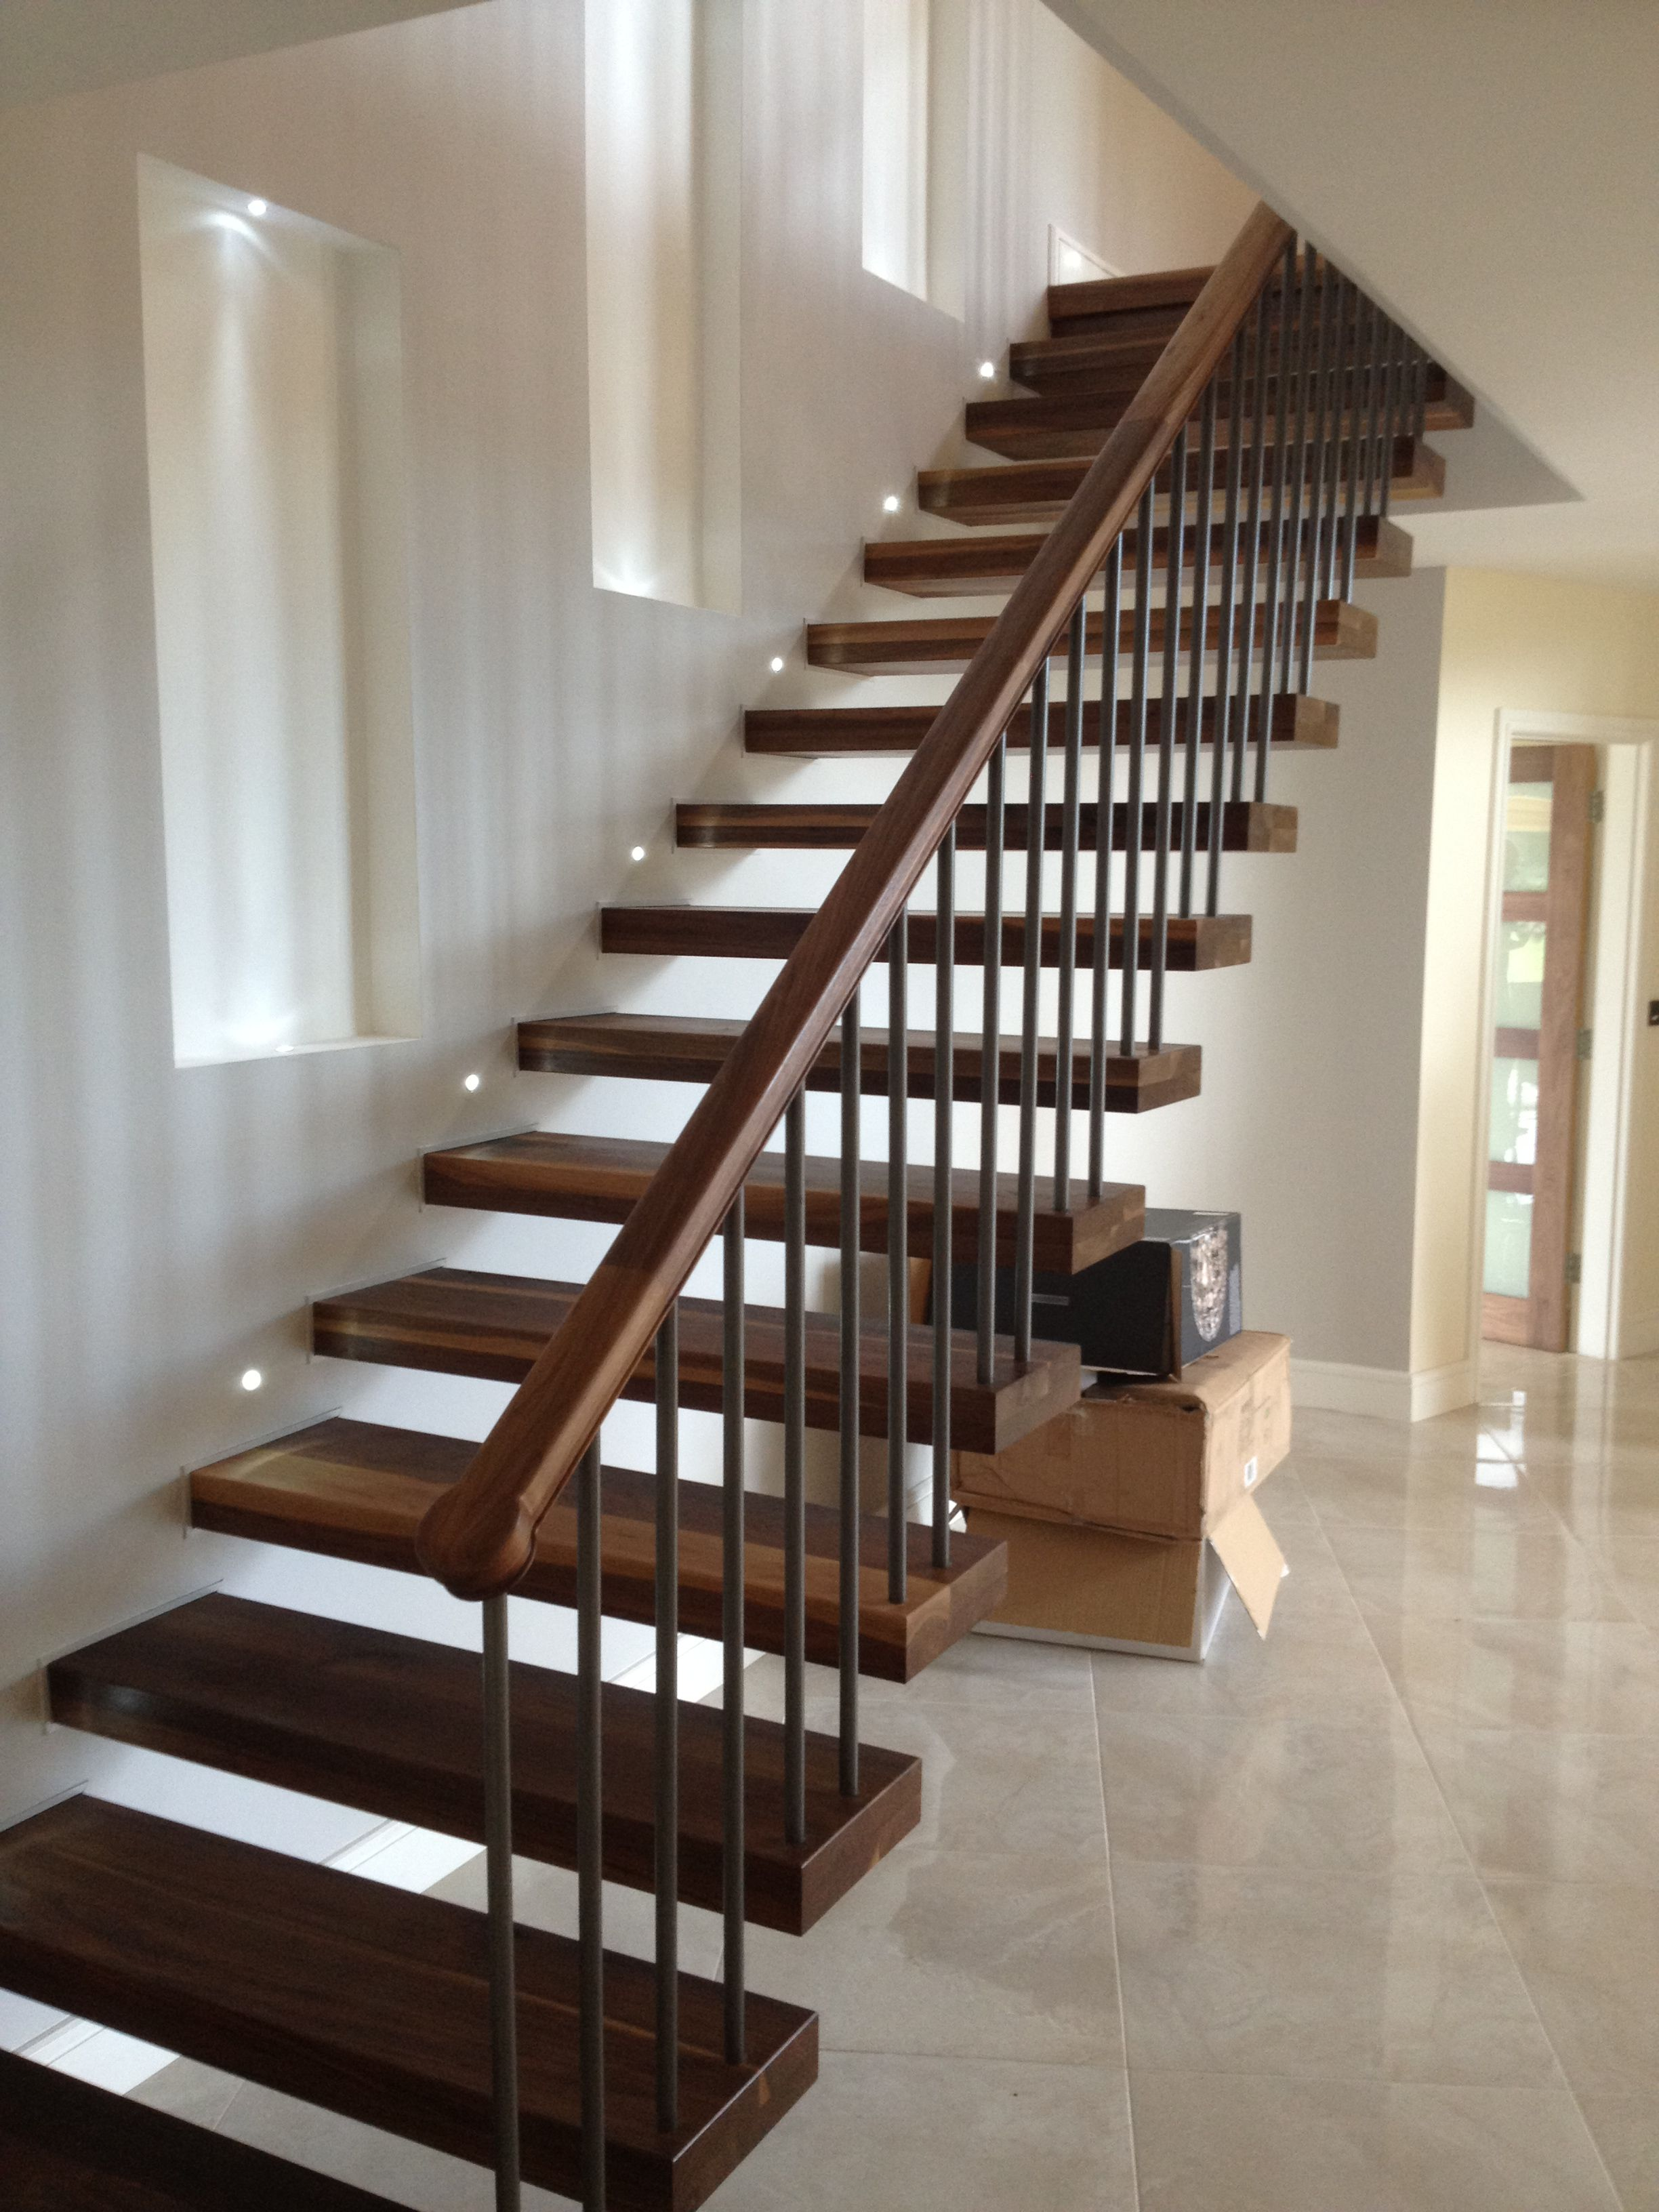 Best Pin By Victoria Francis On New Home Ideas In 2019 Stair Railing Design Floating Stairs 400 x 300